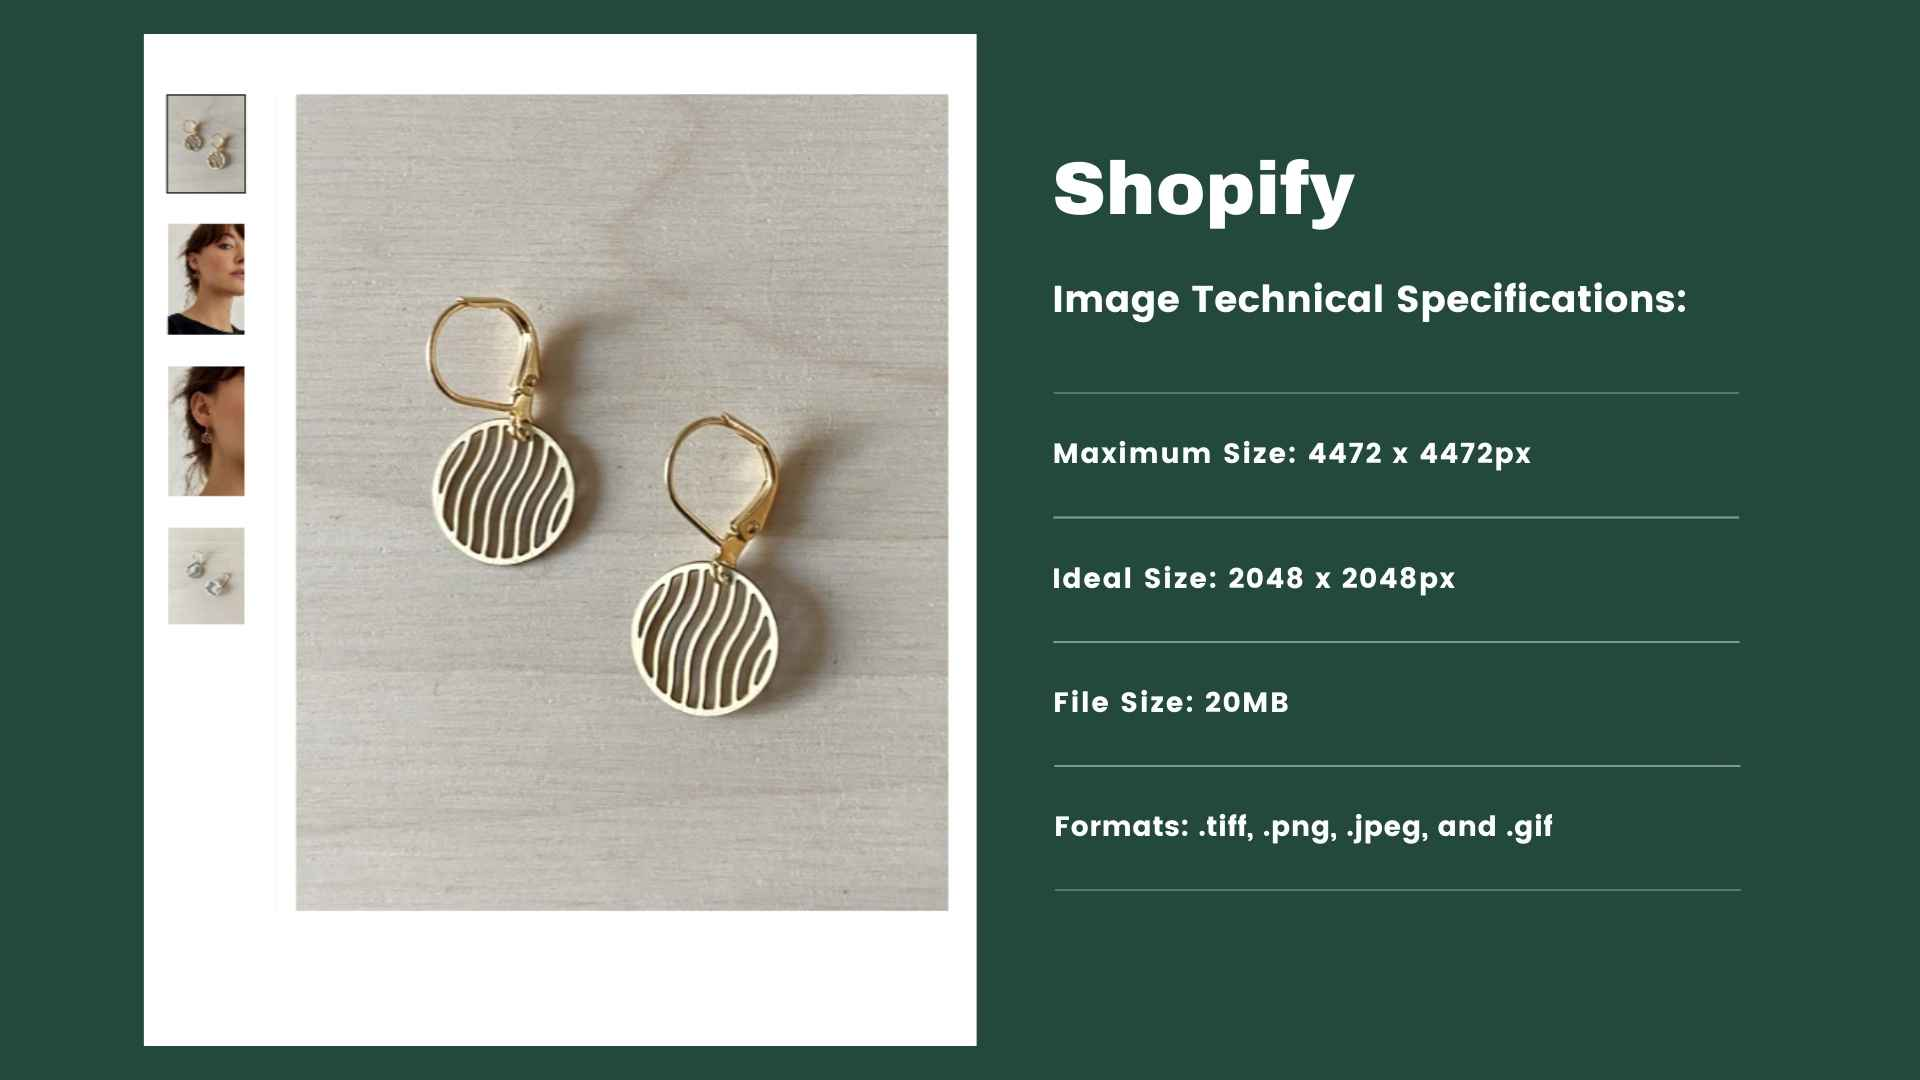 Shopify - Product Image Requirements